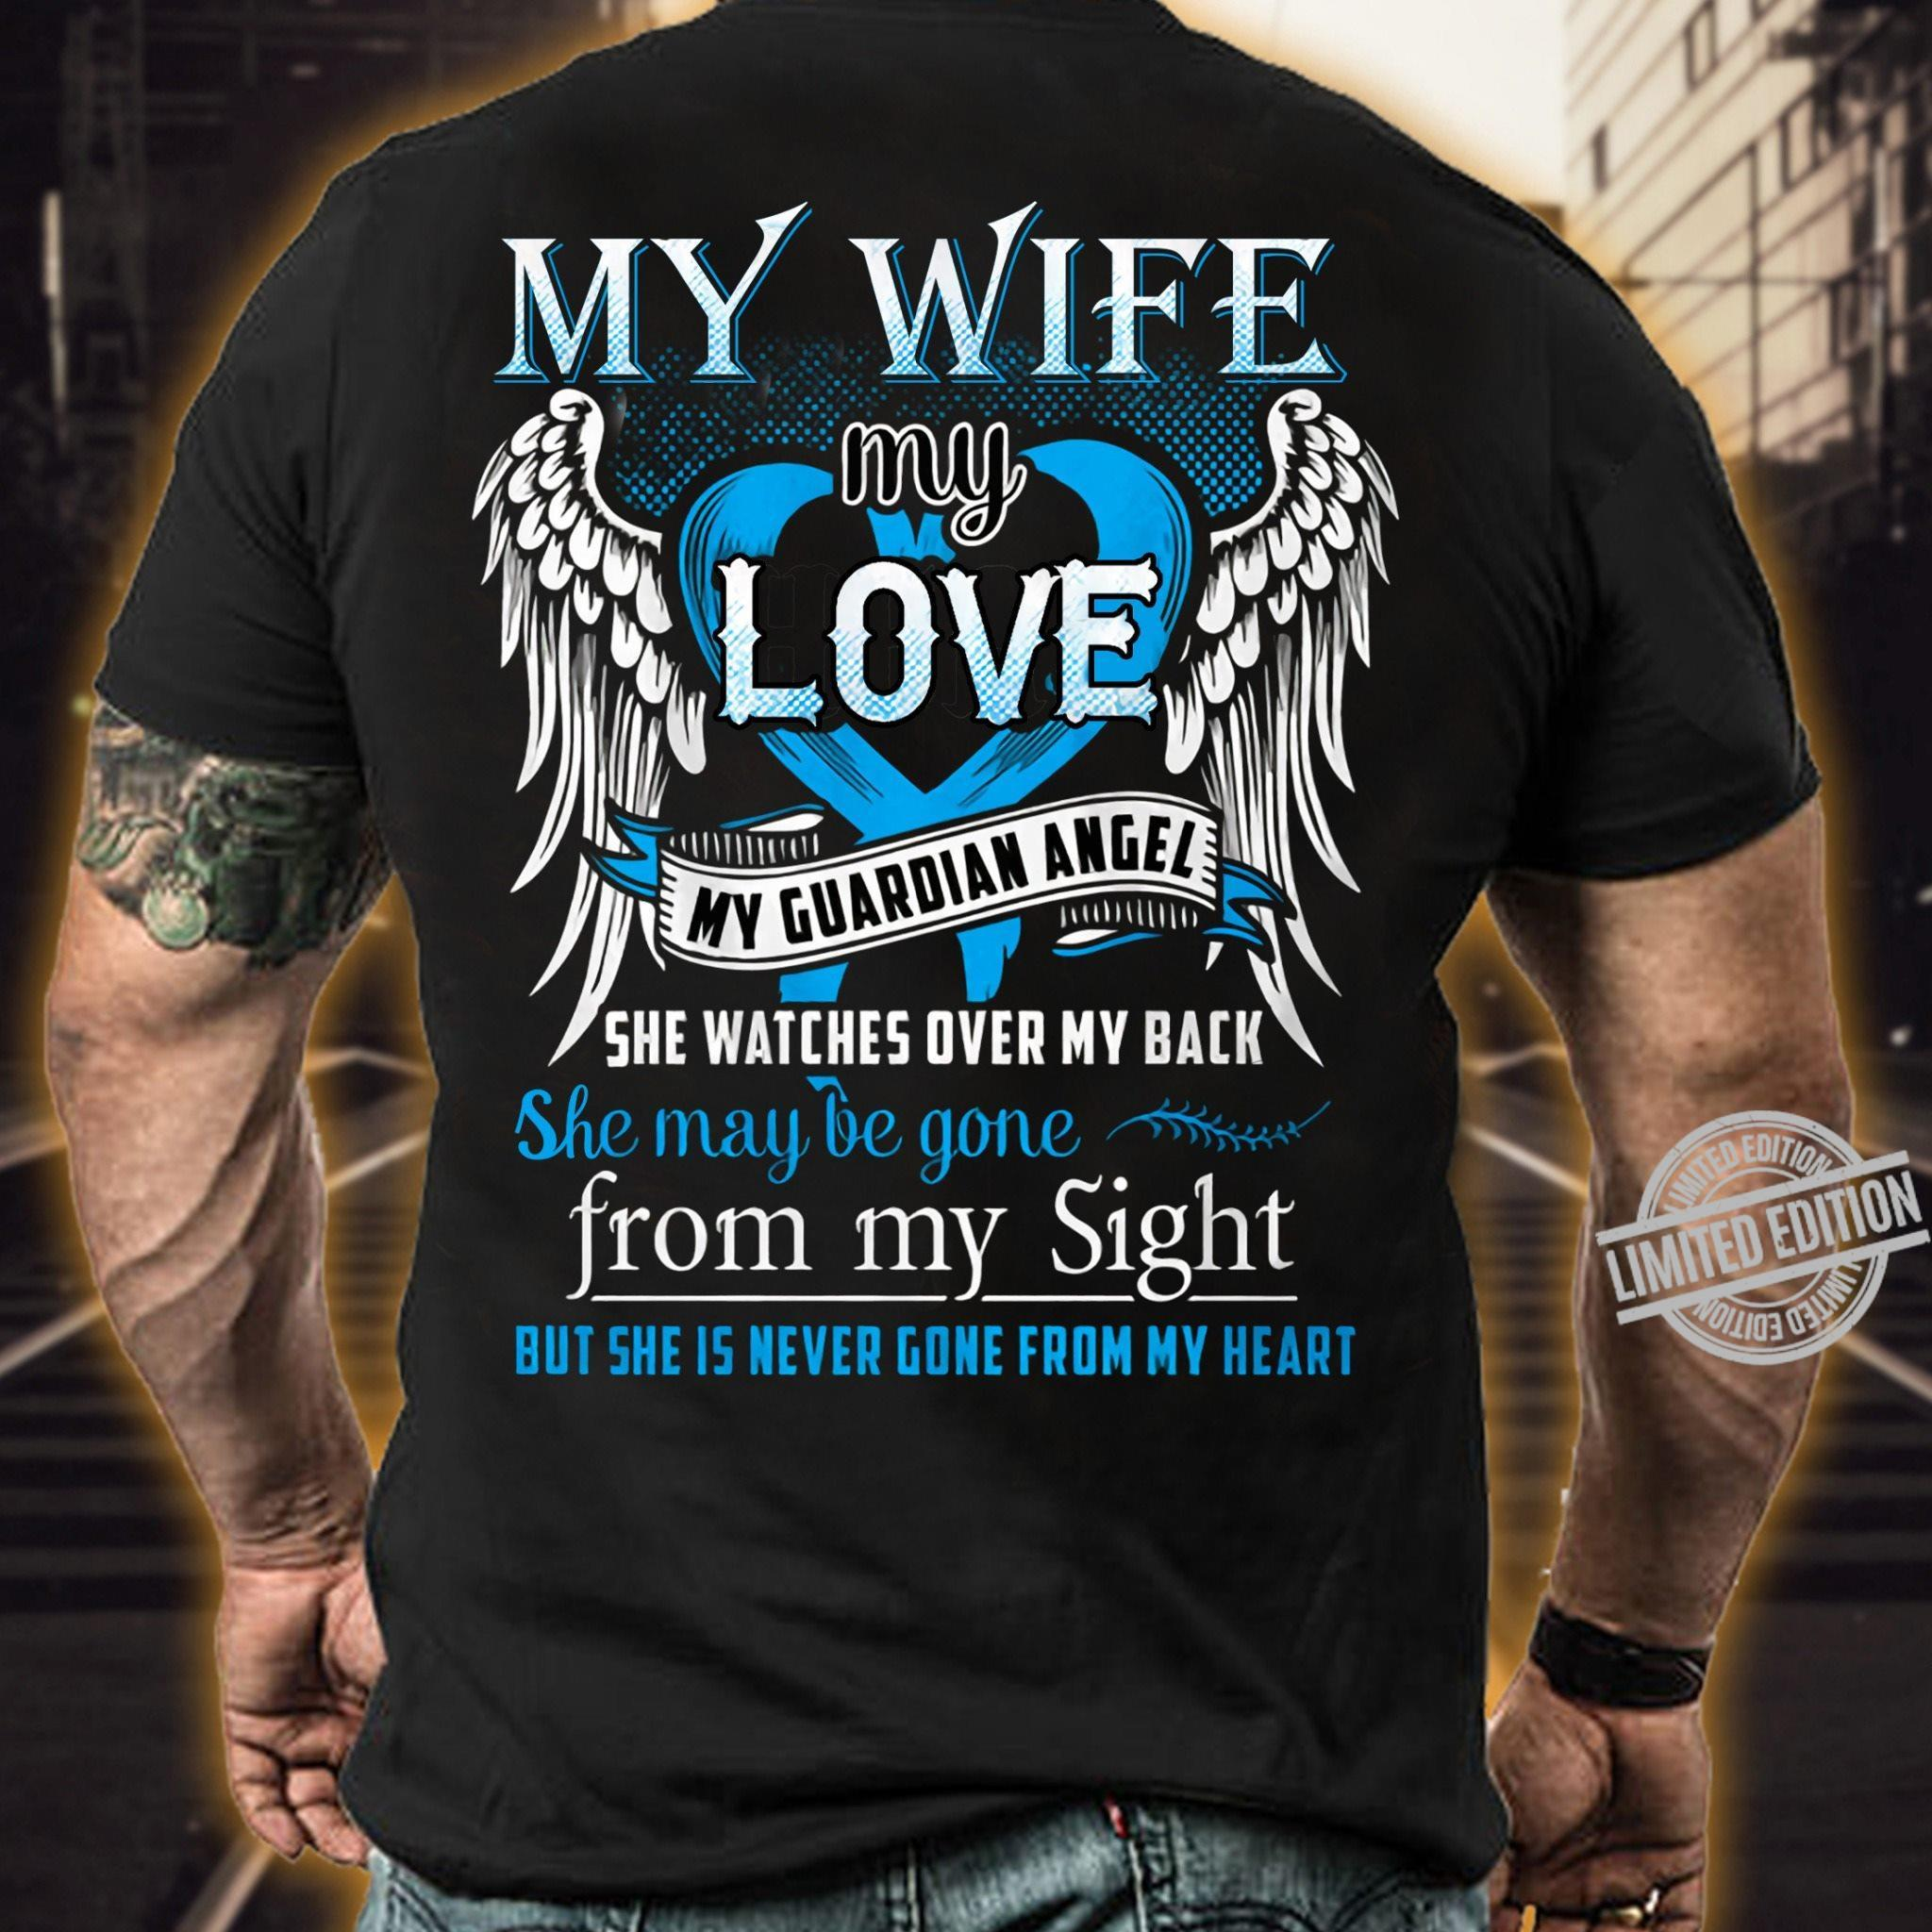 My Wife My Love My Guardian Angel From My Sight Shirt